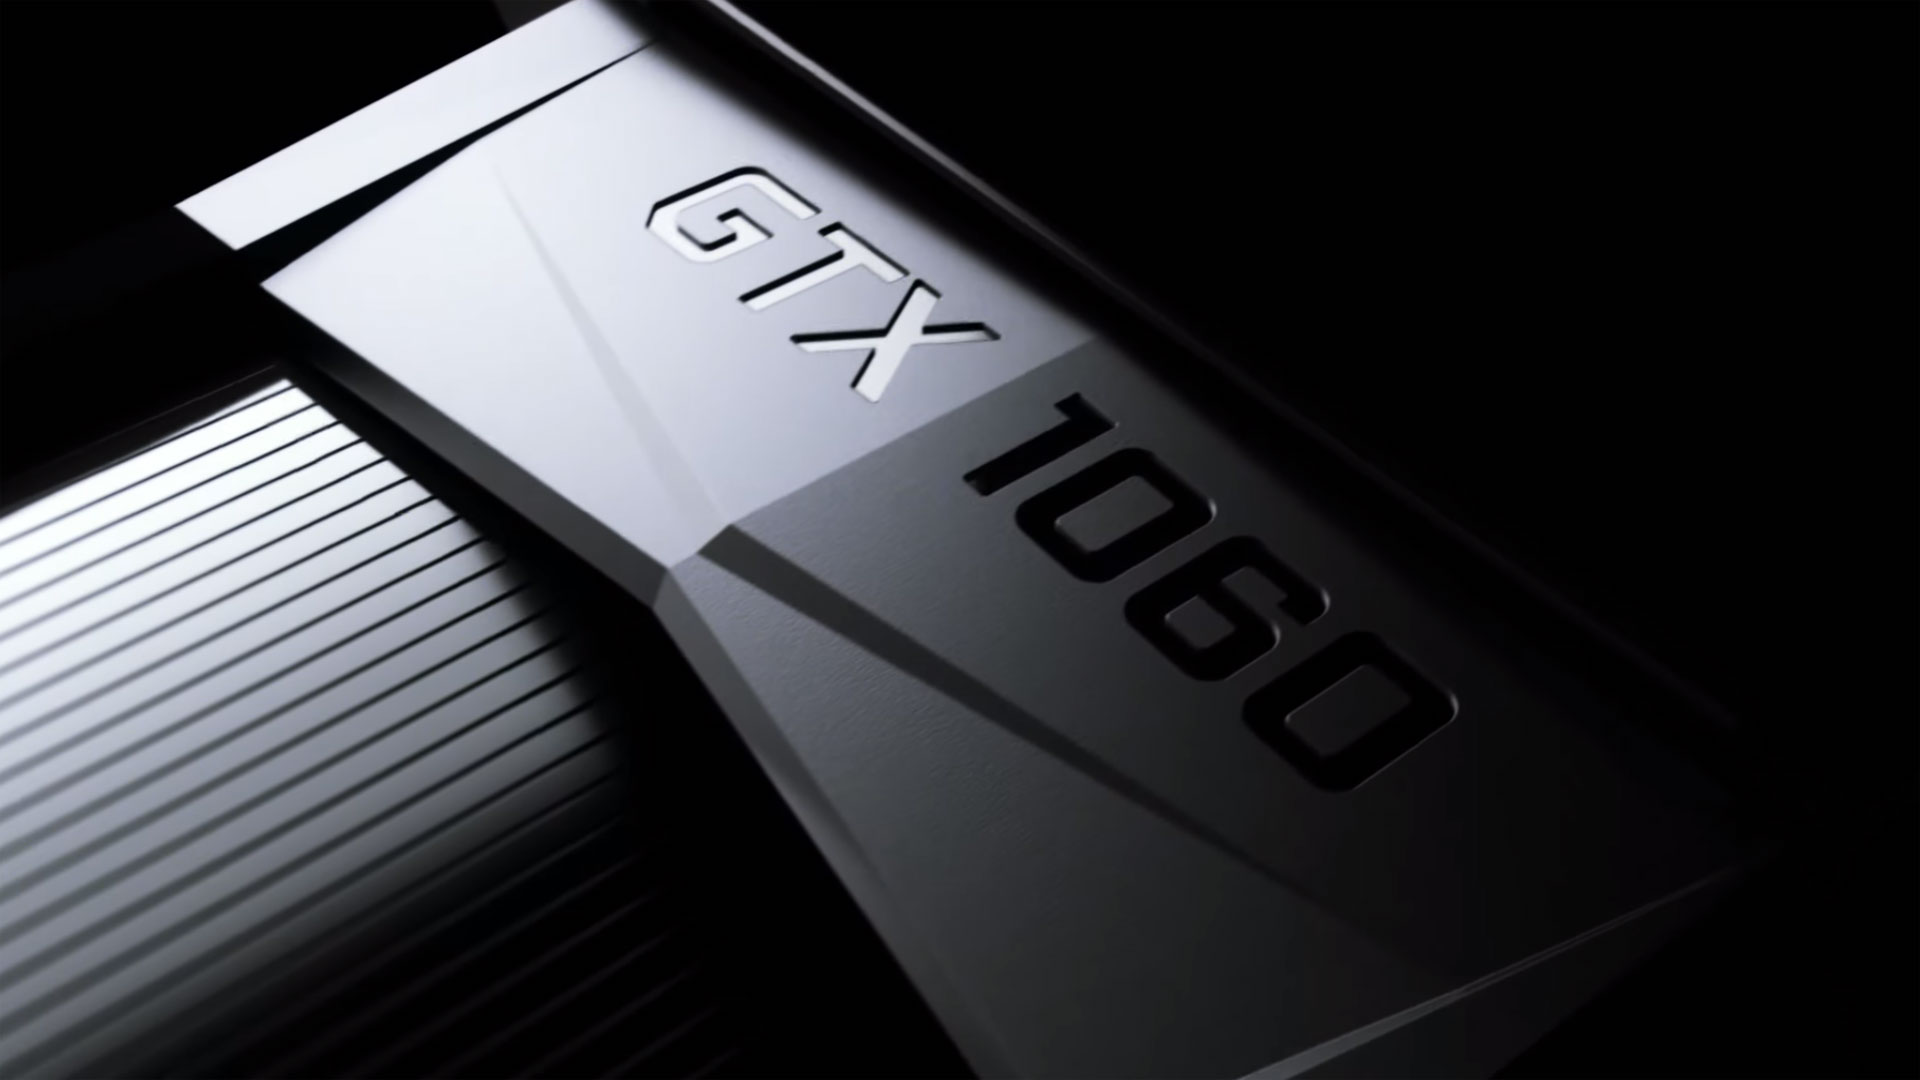 Nvidia's GTX 1060 GPU is coming out of retirement to mine cryptocurrency